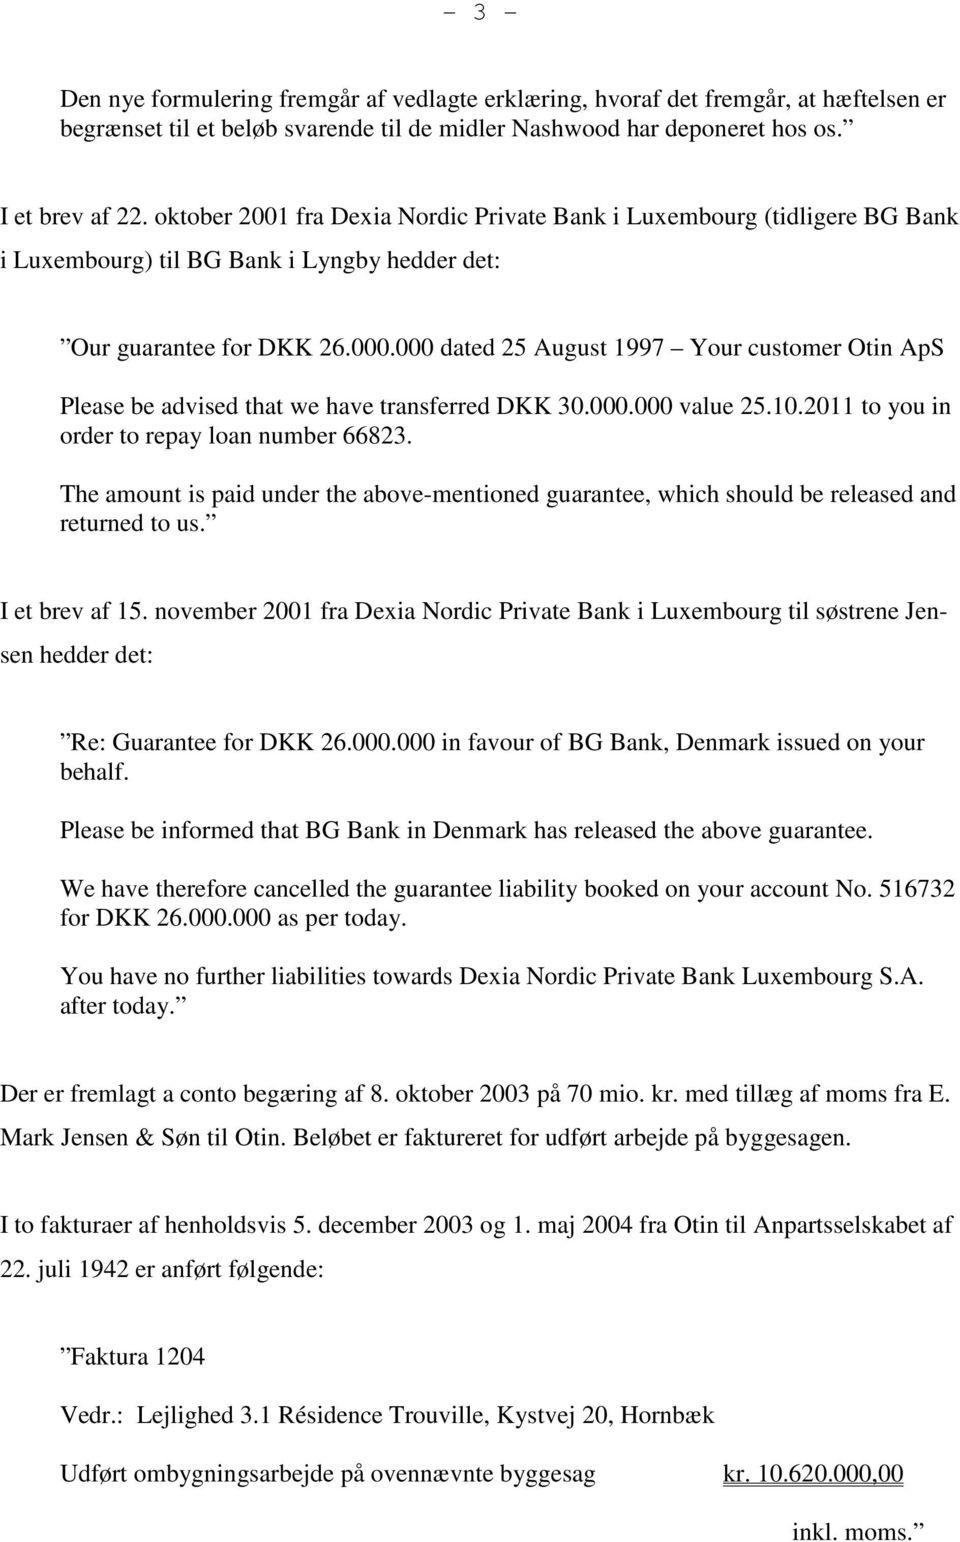 000 dated 25 August 1997 Your customer Otin ApS Please be advised that we have transferred DKK 30.000.000 value 25.10.2011 to you in order to repay loan number 66823.